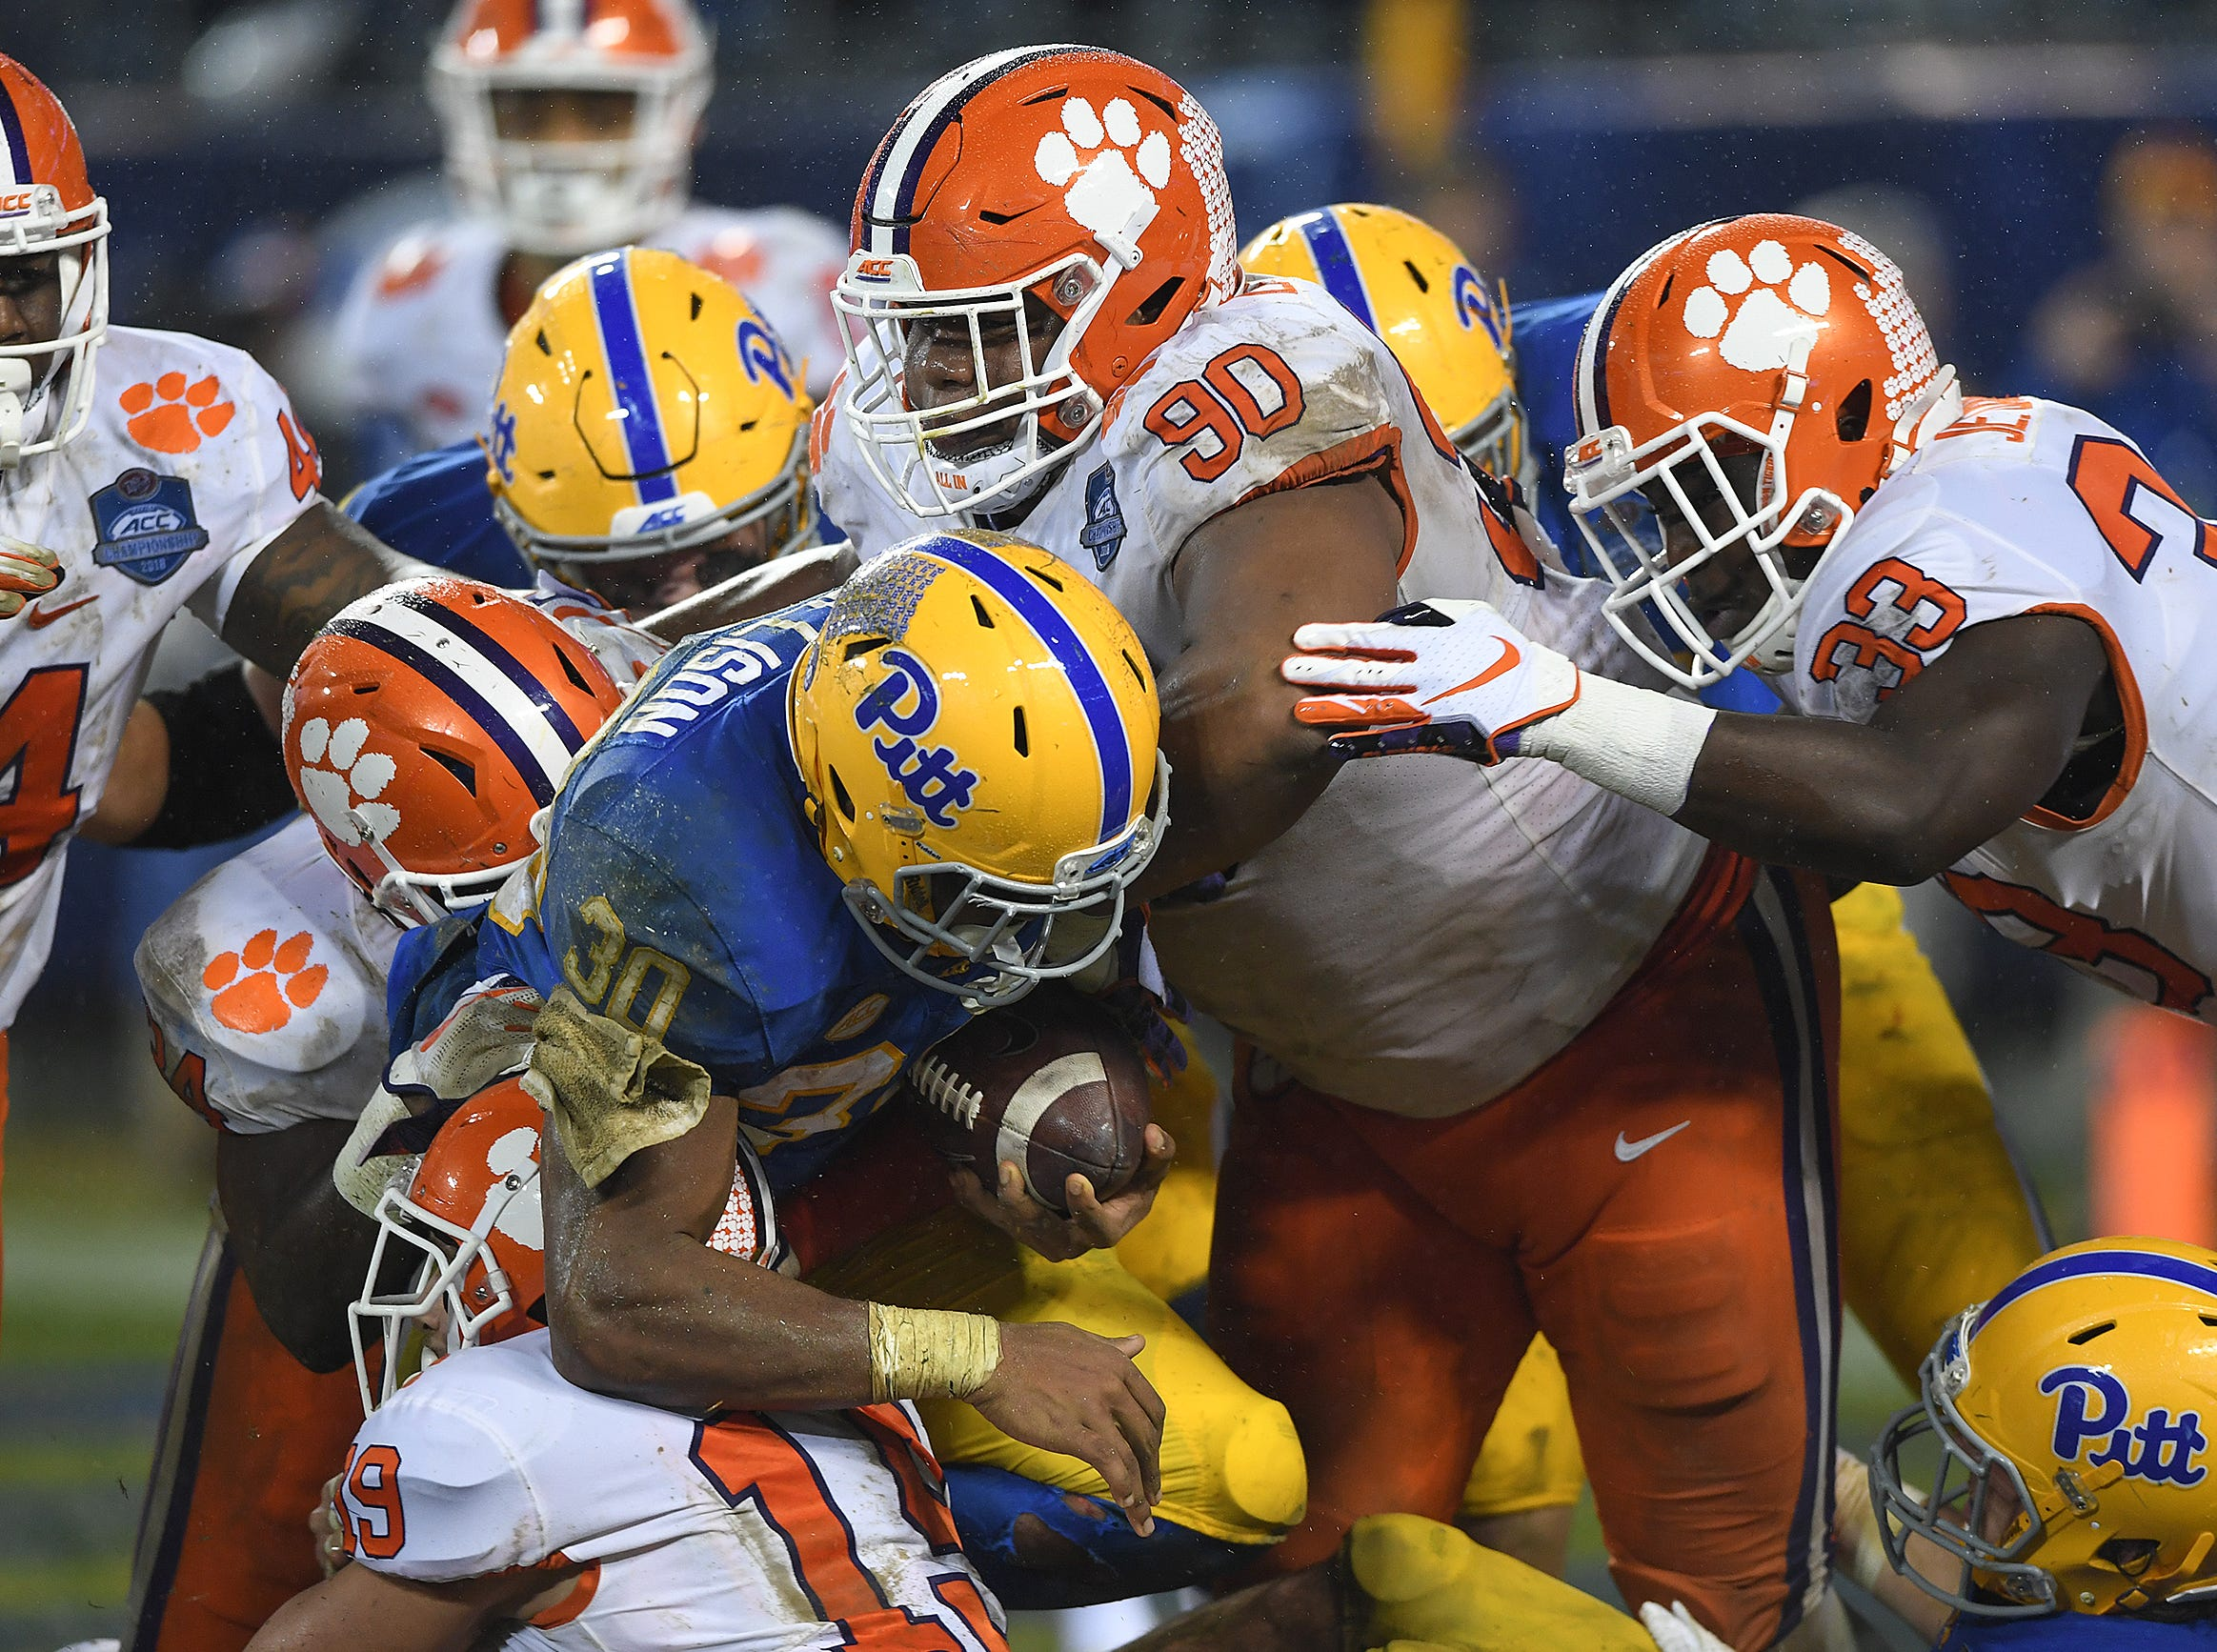 Clemson defensive back Tanner Muse (19), linebacker Kendall Joseph (34), and defensive lineman Dexter Lawrence (90) stop Pittsburgh running back Qadree Ollison (30) at the goal line during the 2nd quarter of the Dr. Pepper ACC Championship at Bank of America Stadium in Charlotte, N.C. Saturday, December 1, 2018.